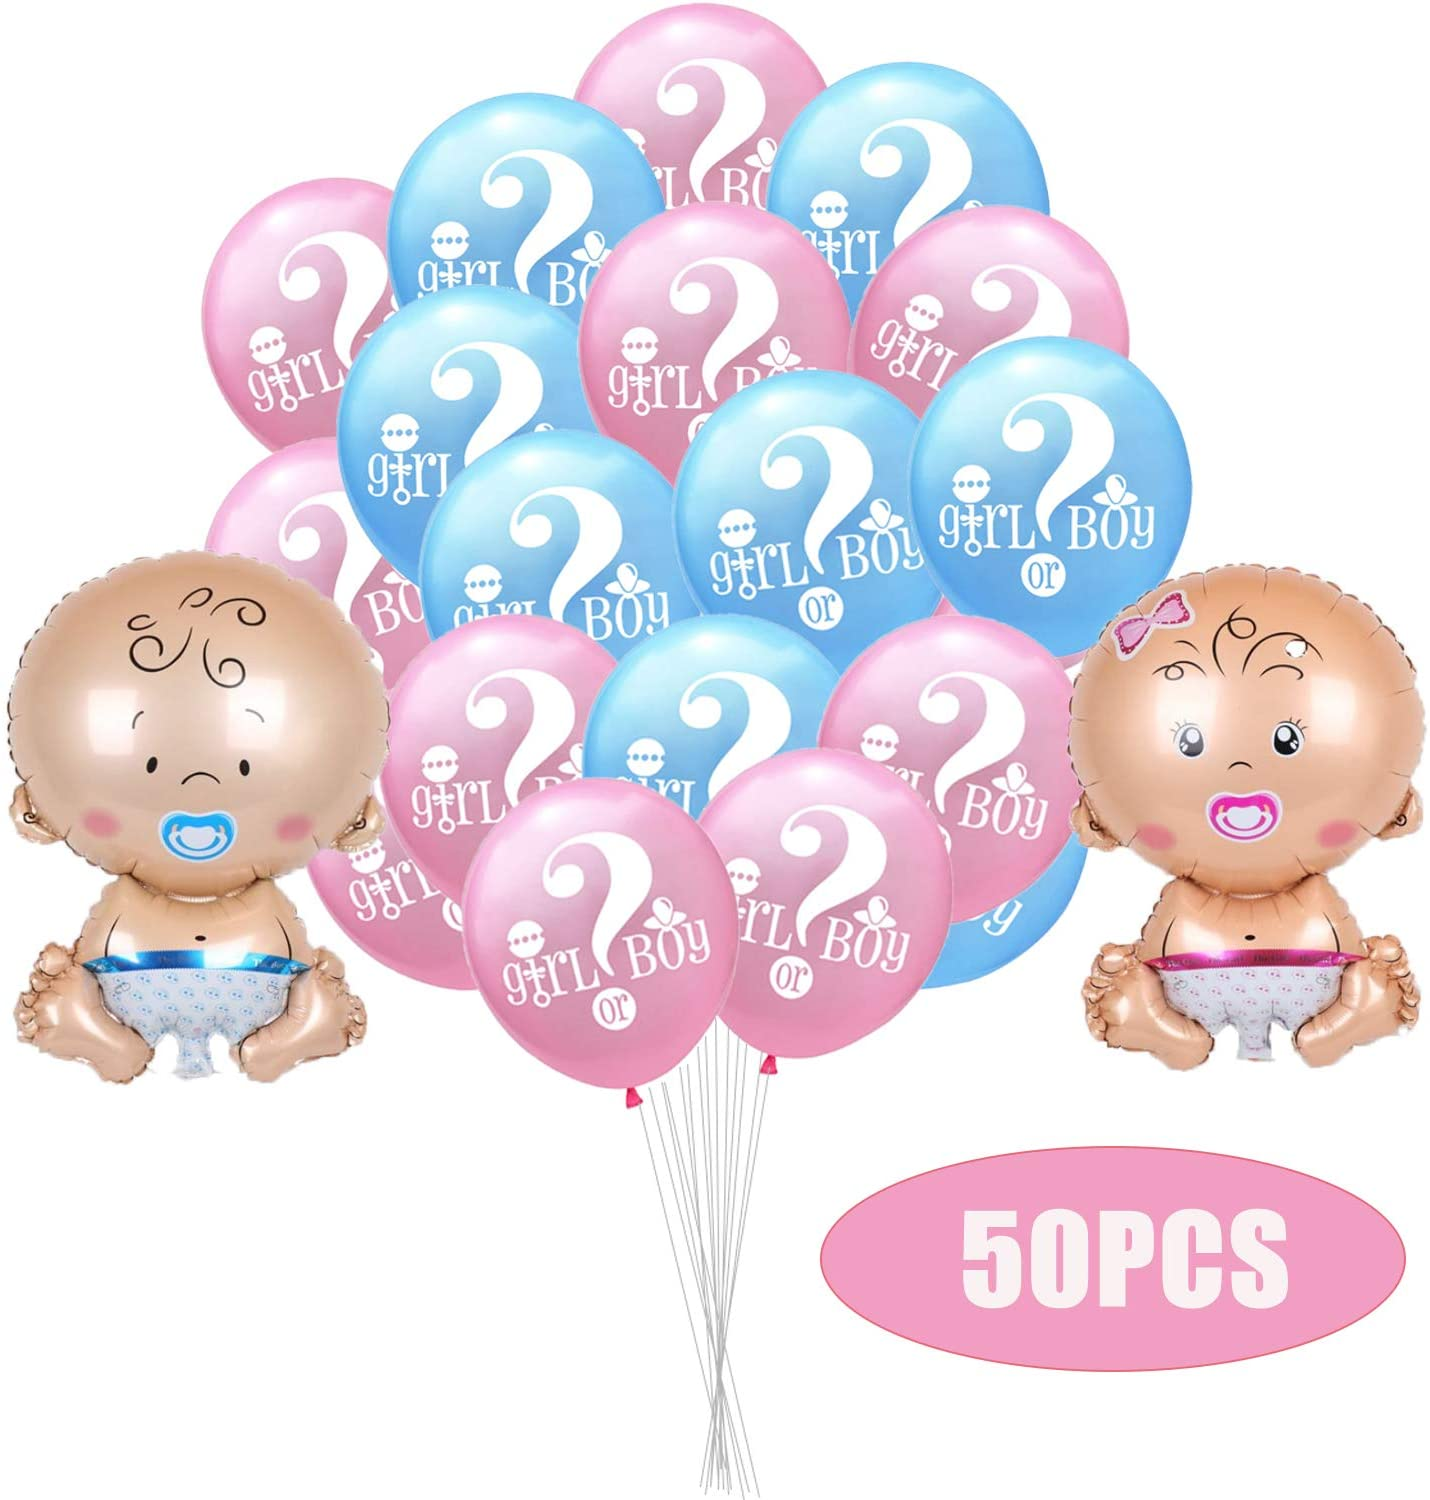 50PCS Gender Reveal Decorations Party Balloons - Baby Shower/Birthday Party Supplies Decoration Pink Blue Foil Balloon and Latex Balloons